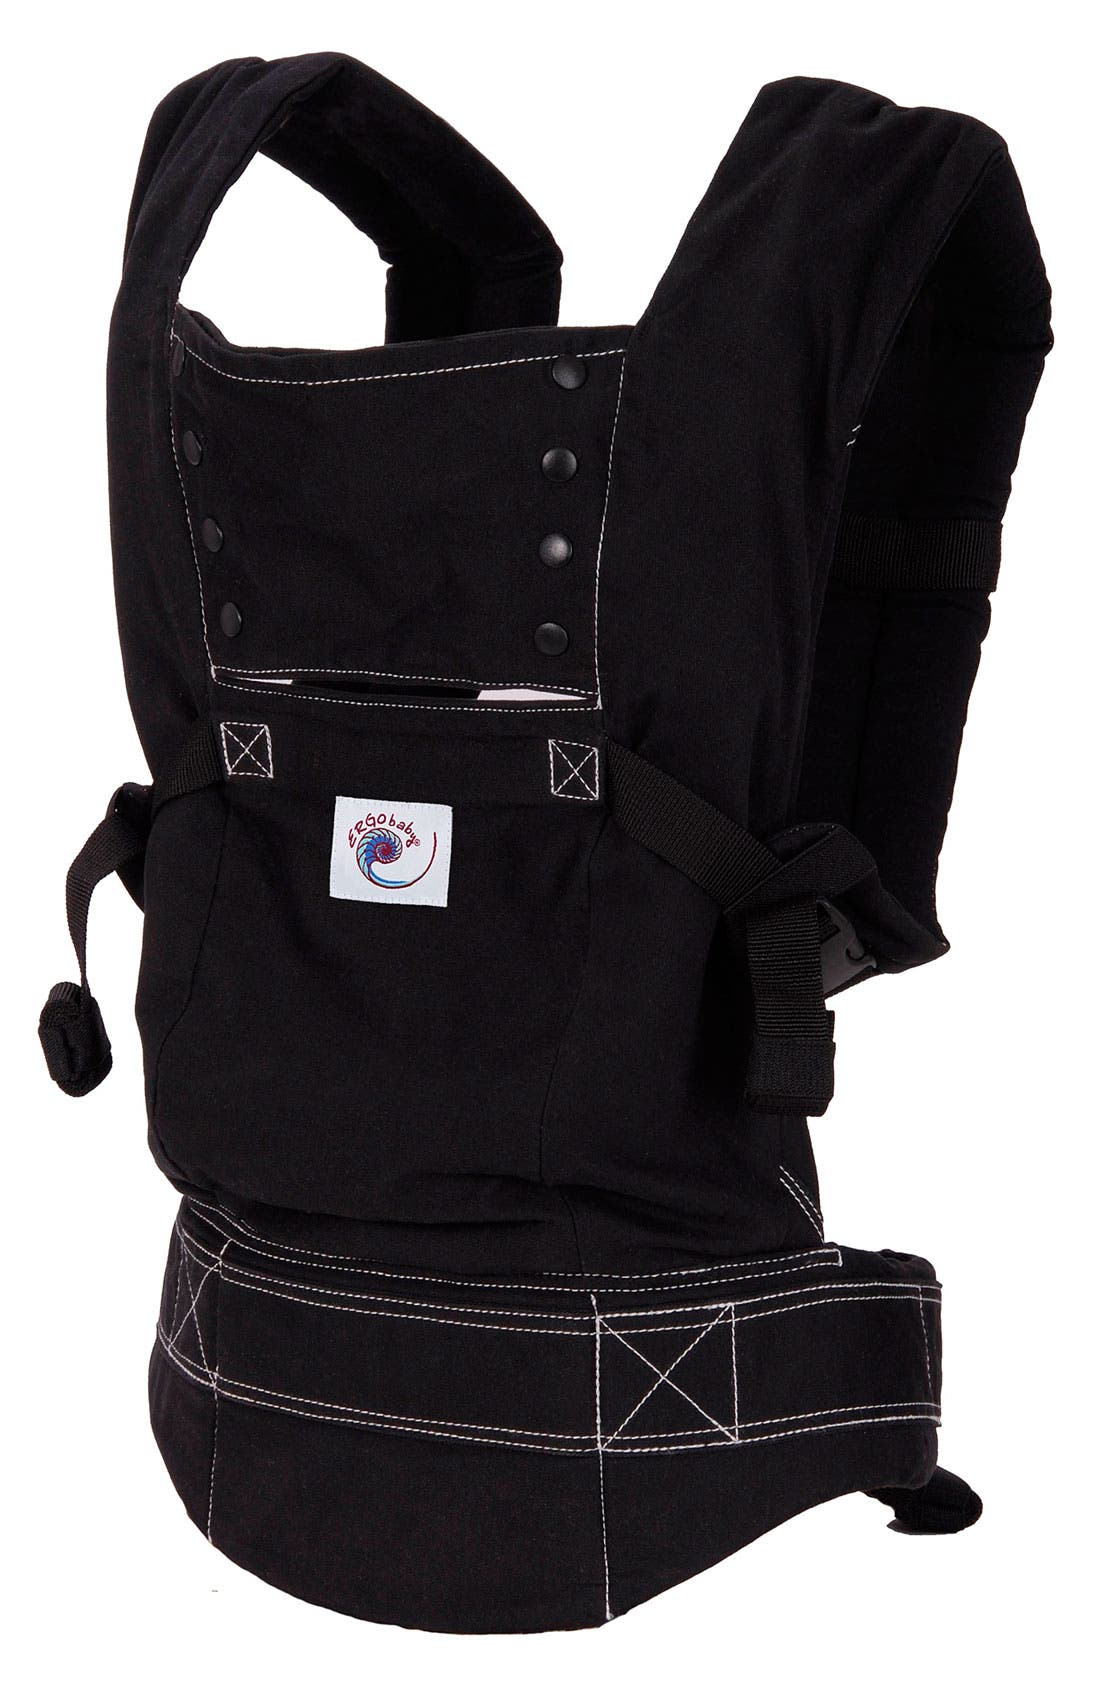 Baby Carrier,                             Main thumbnail 1, color,                             001